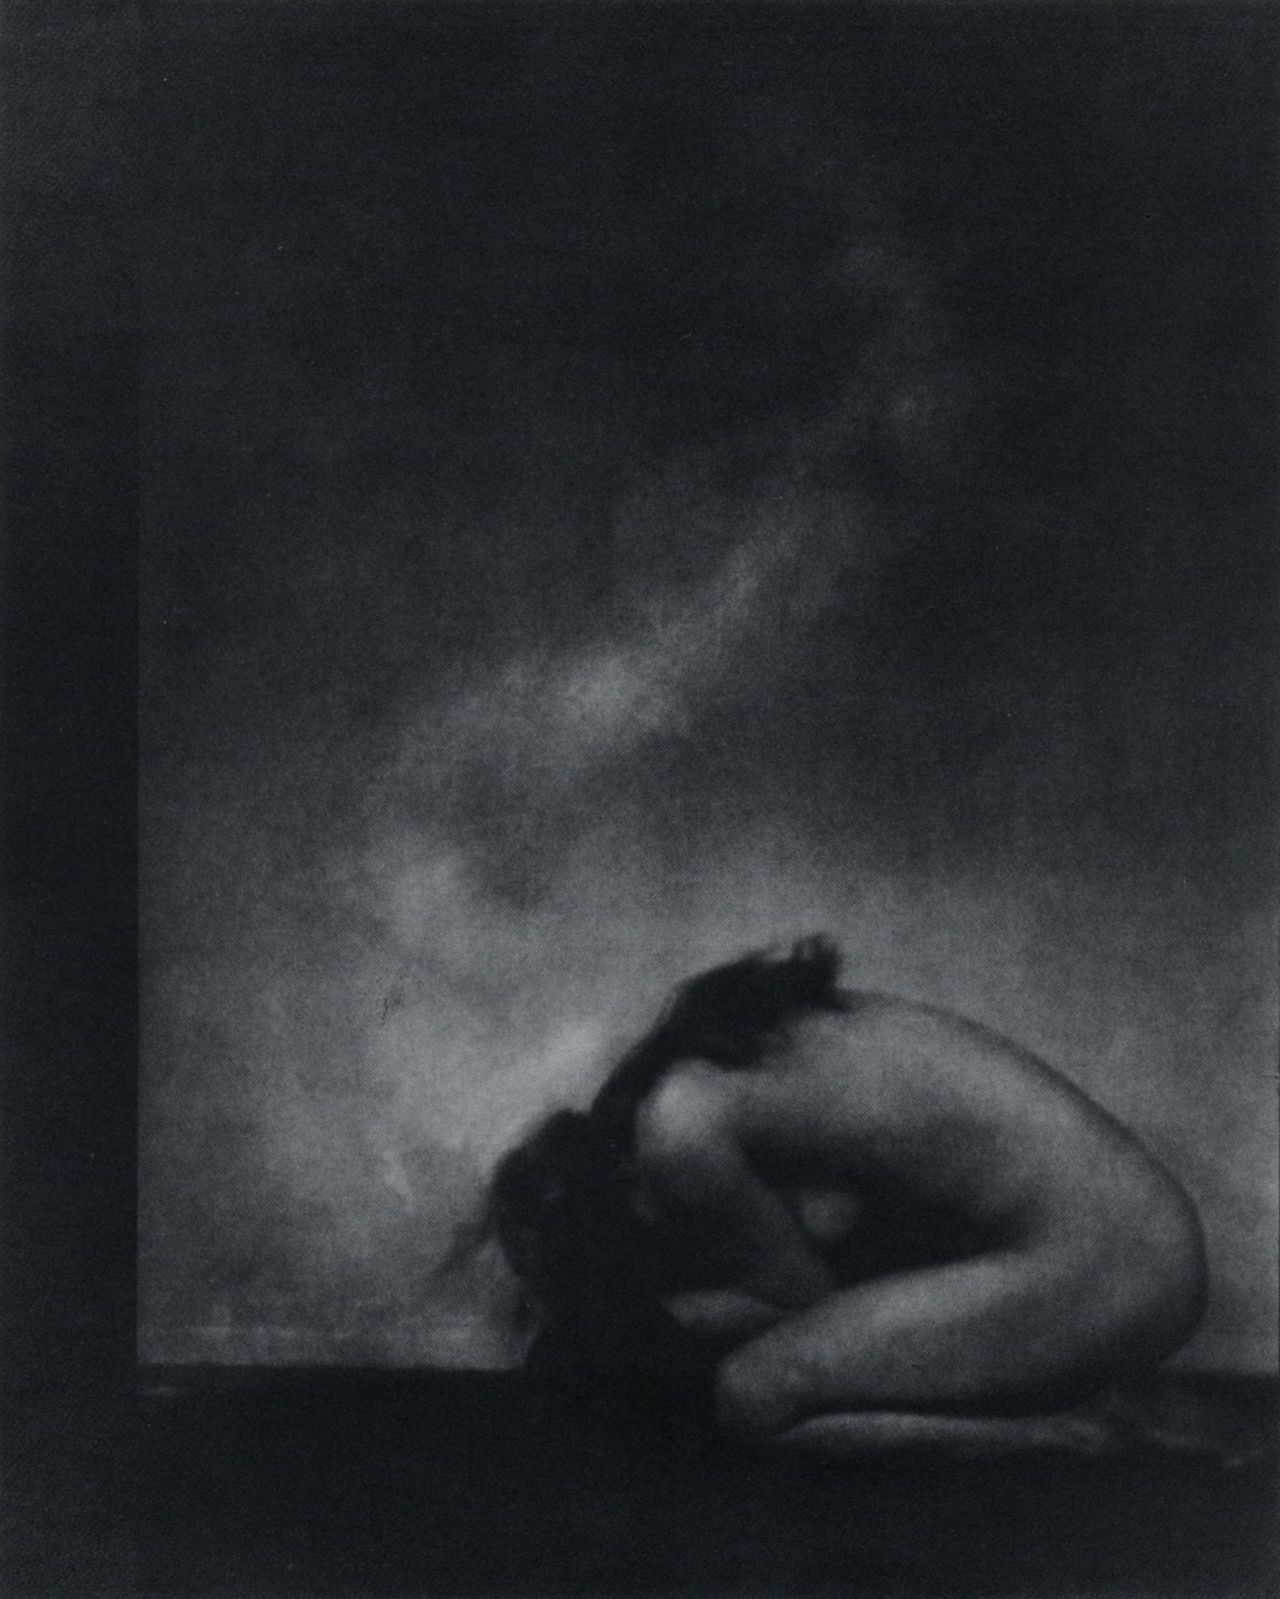 liquidnight:  Max Thorek Despair, circa 1936 From The Creative Camera Art of Max Thorek